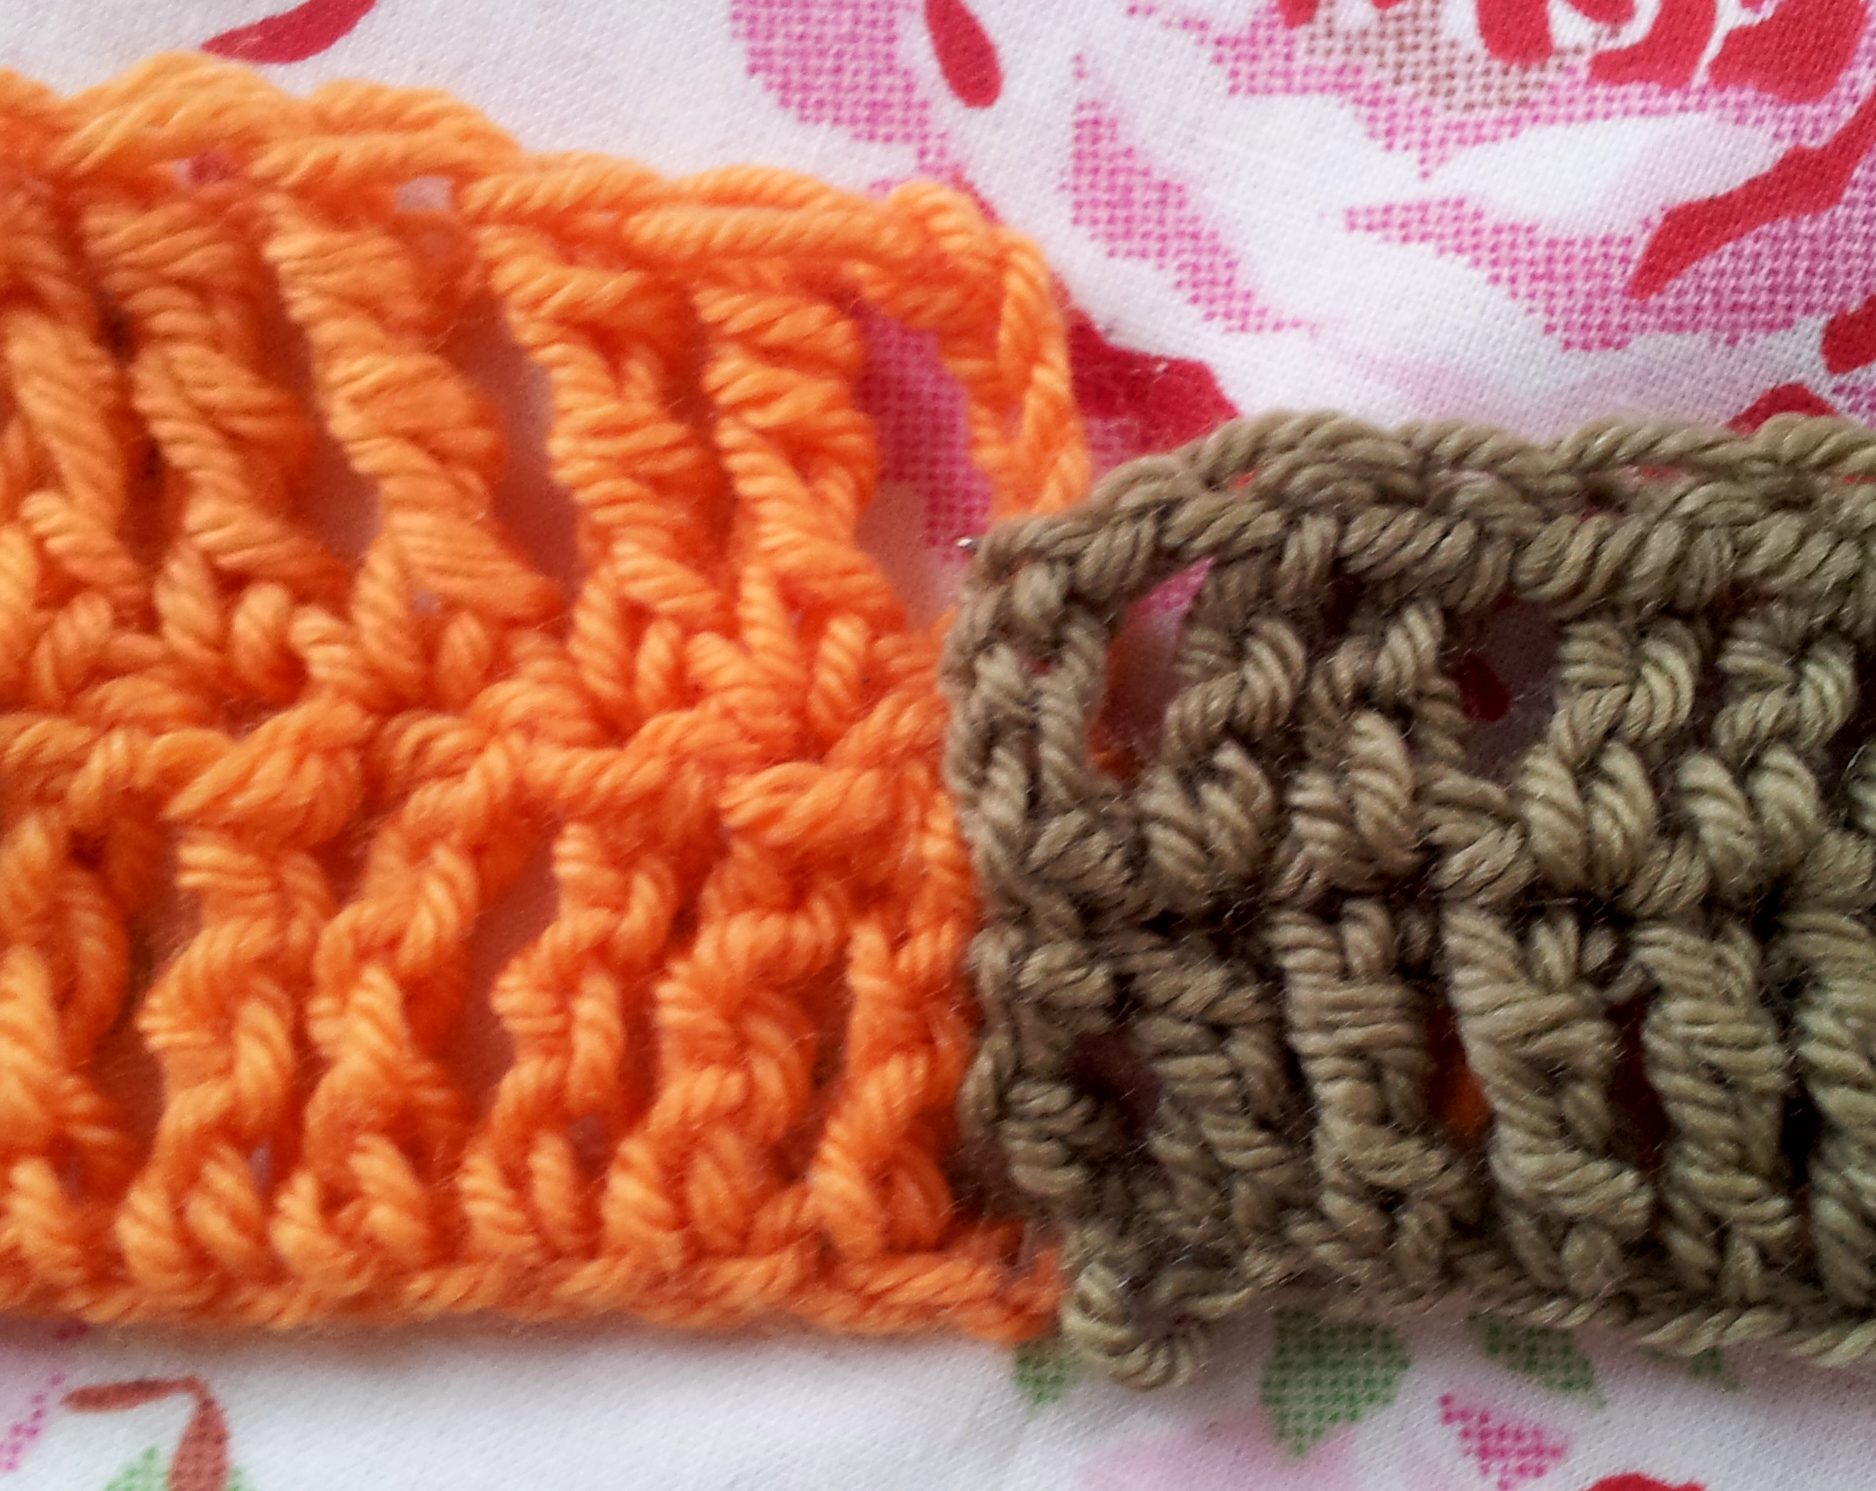 Crochet Stitches Uk Treble : for crochet? The triple treble (UK) or double treble (US) stitch ...